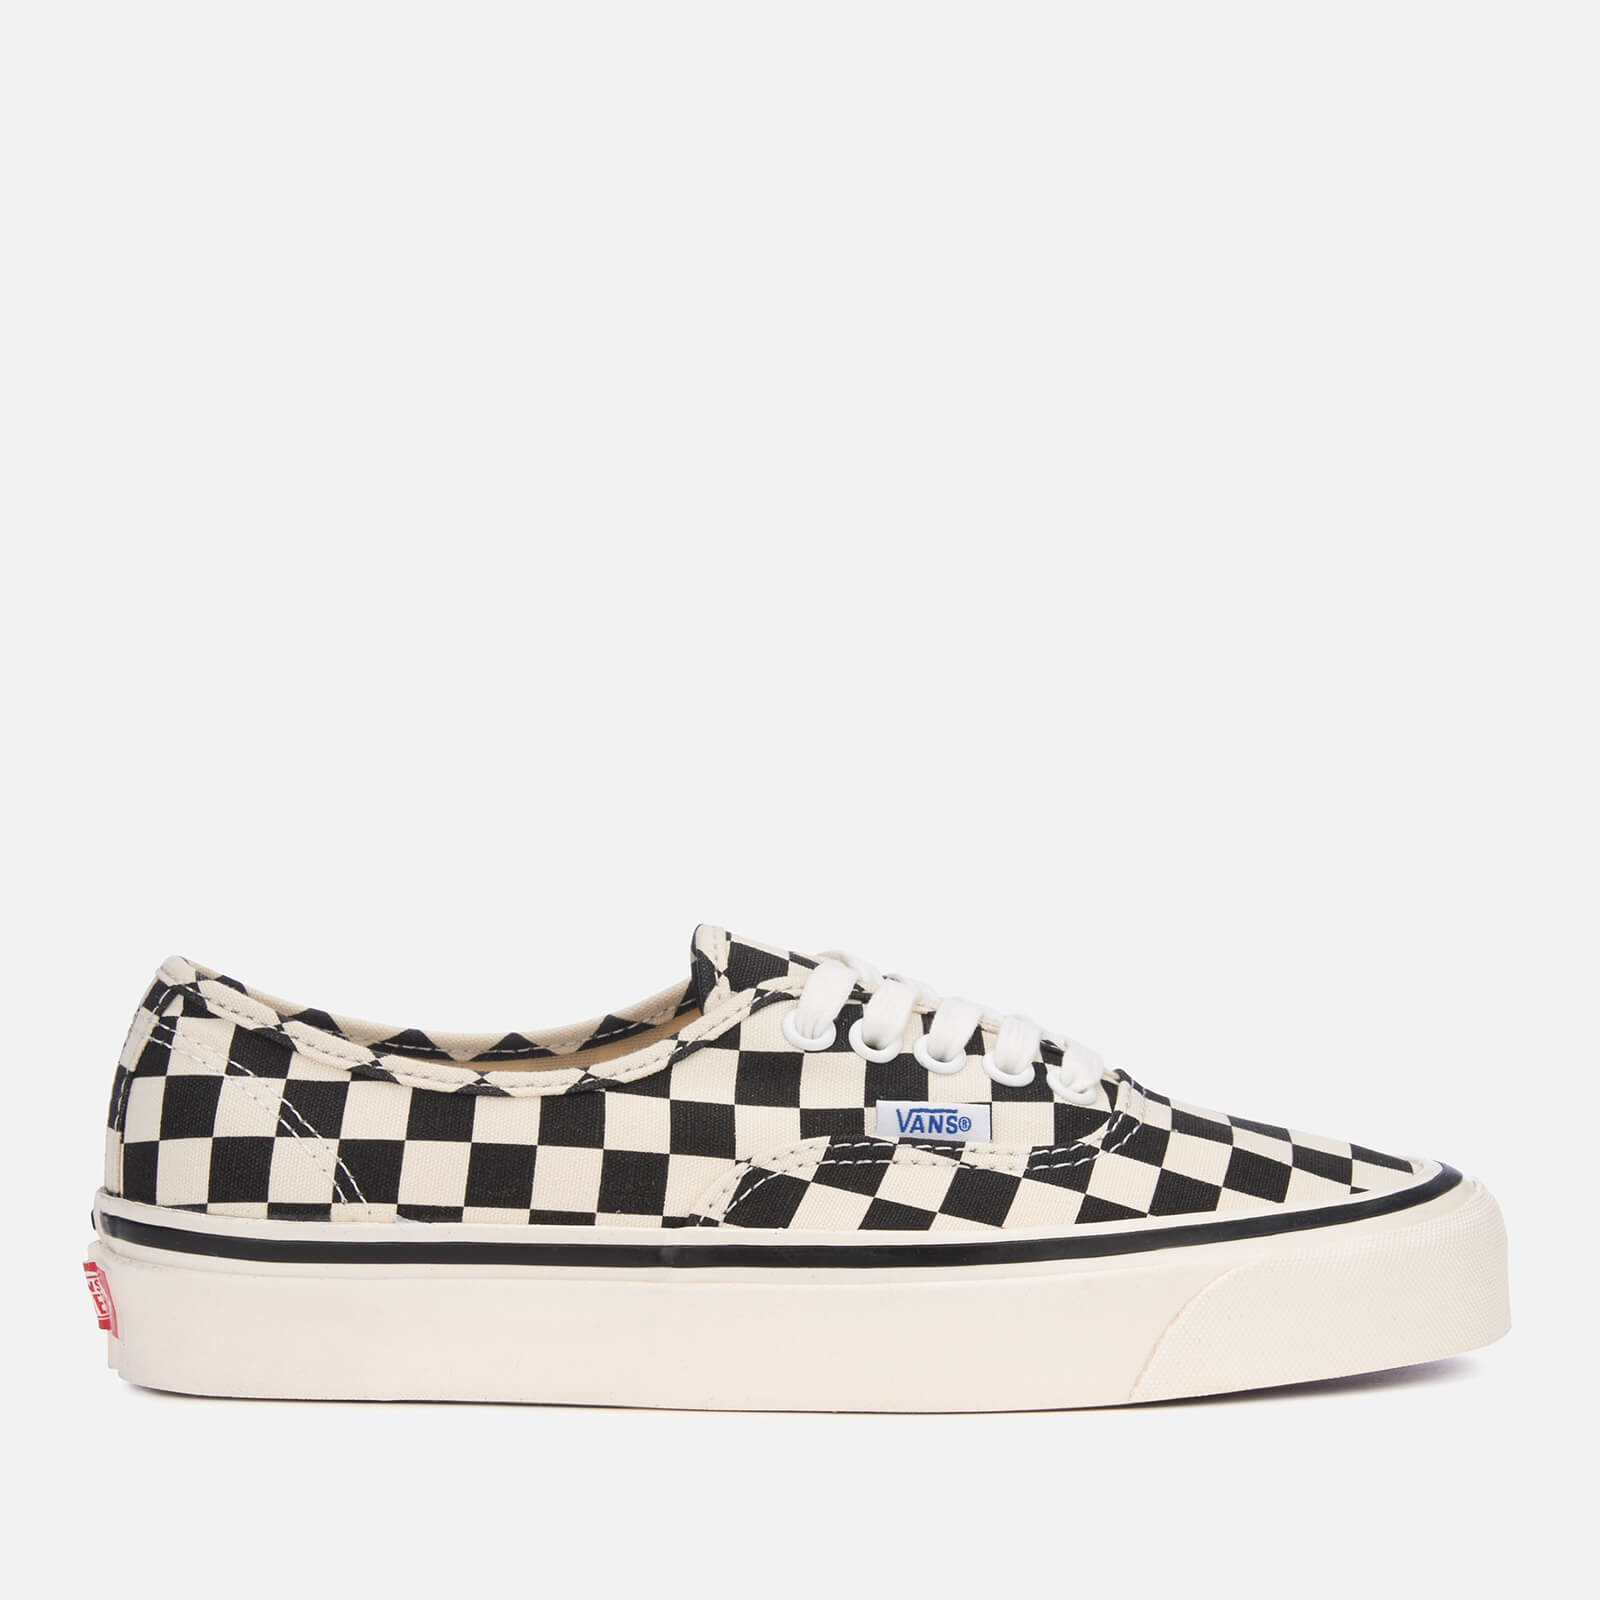 4047a750d285ee Vans Anaheim Authentic 44 Dx Trainers - Black Check - Free UK Delivery over  £50